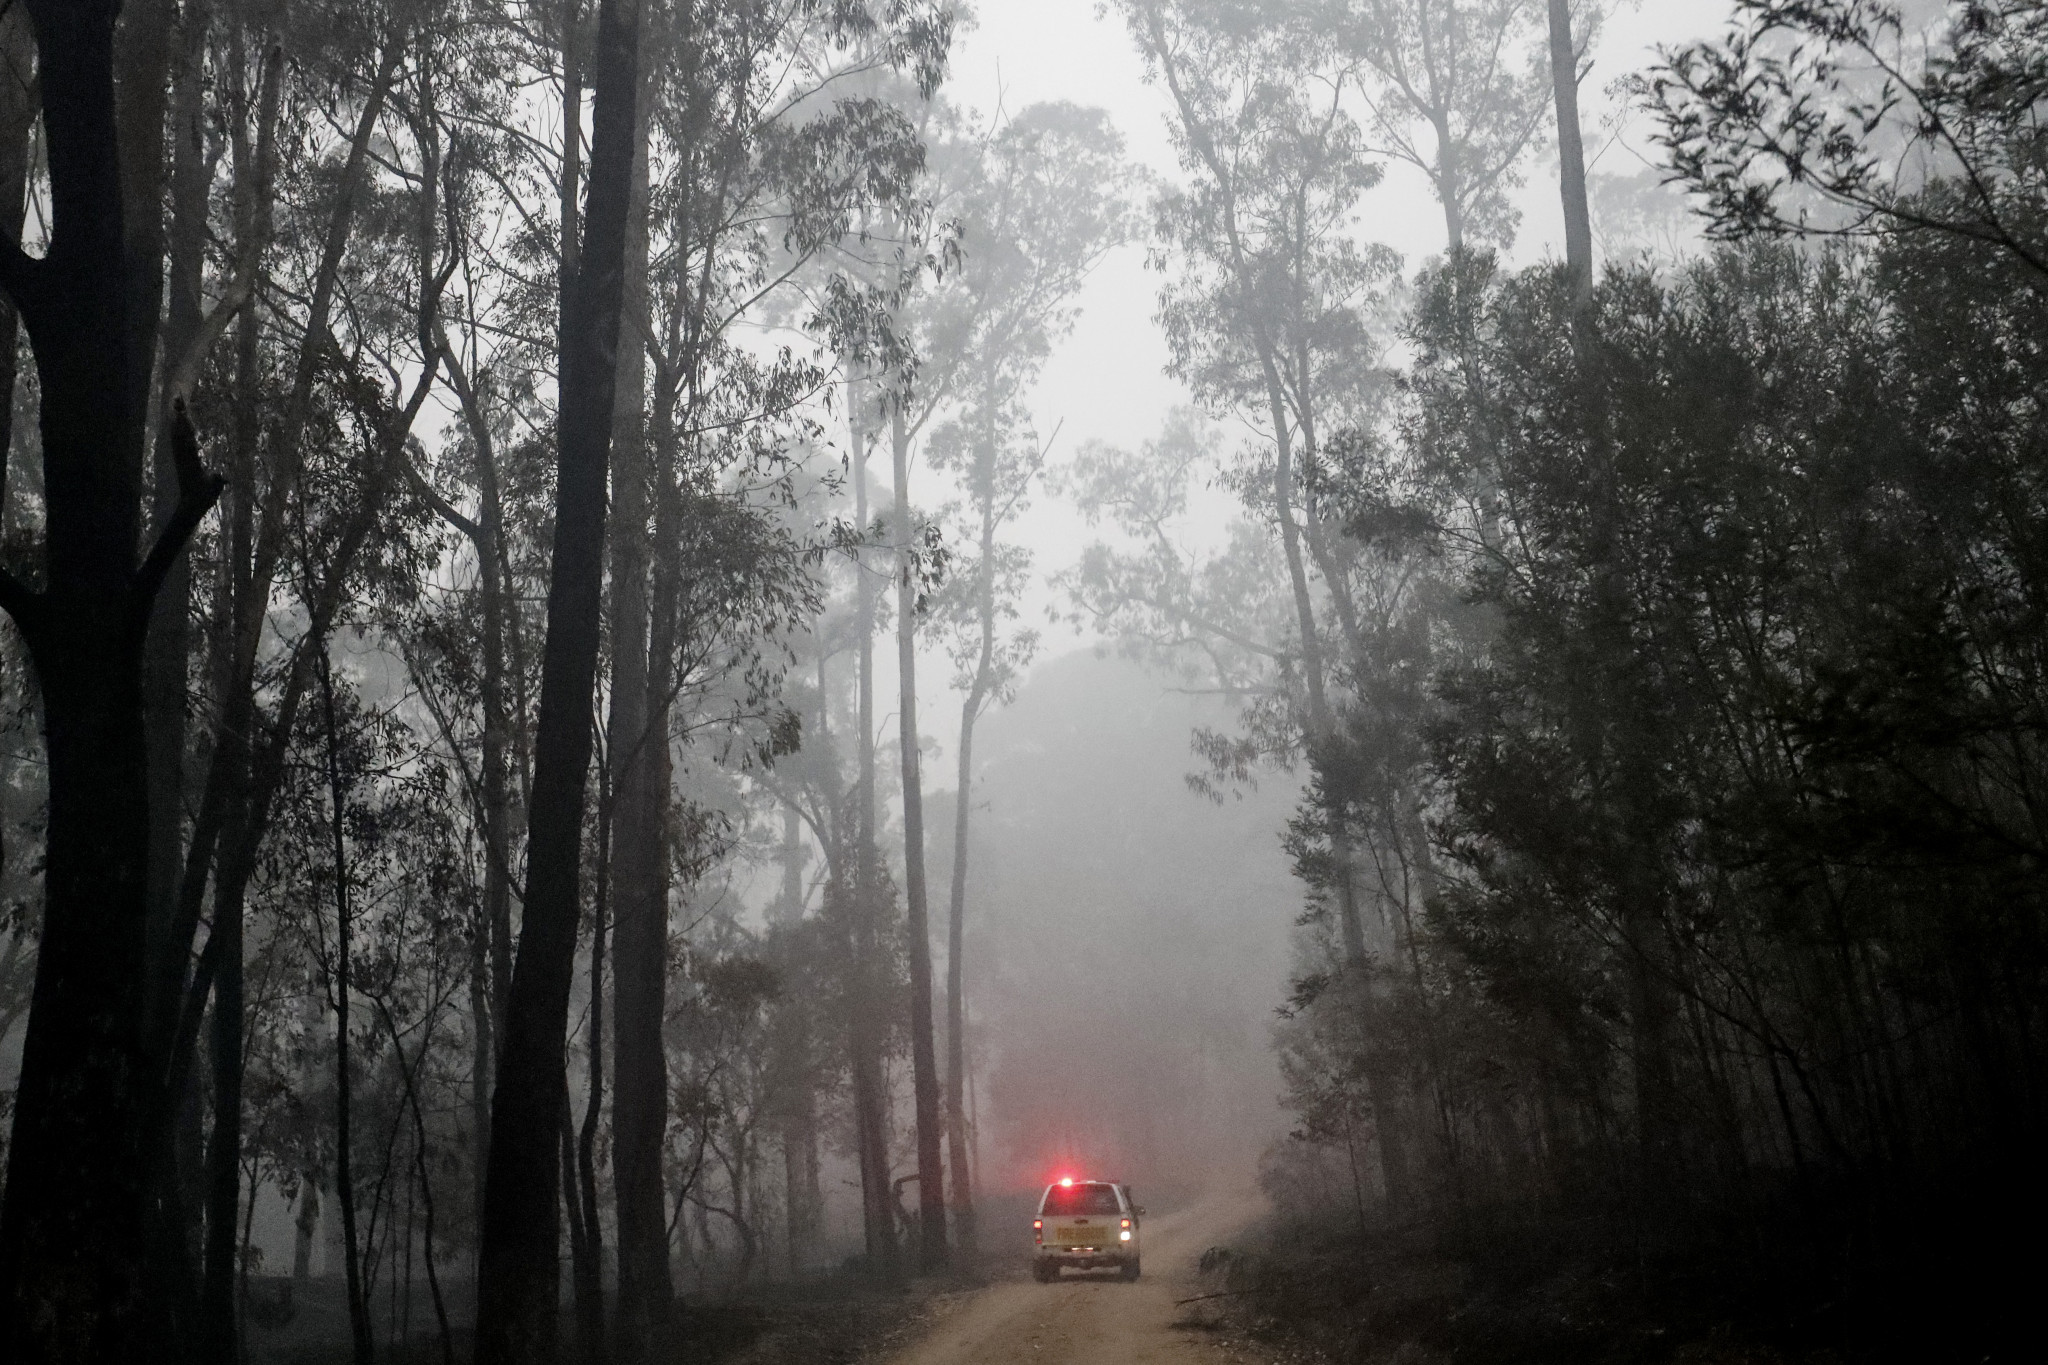 Tour Down Under expected to go ahead as organisers monitor bushfires